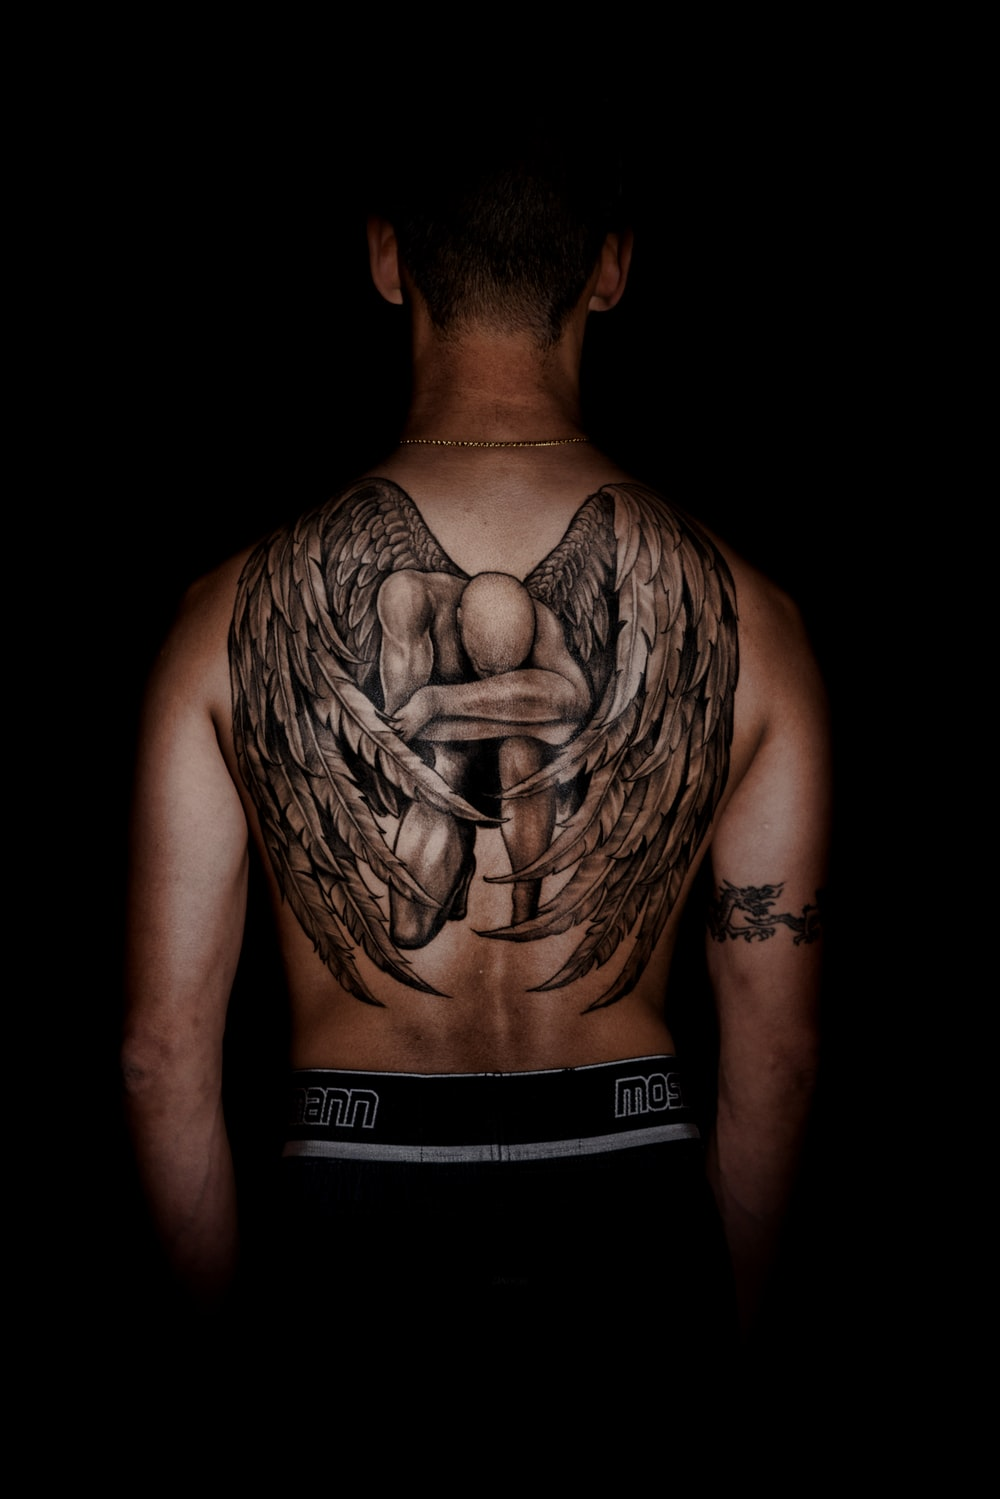 a14bfed7b Tattoo Images [HQ] | Download Free Images on Unsplash